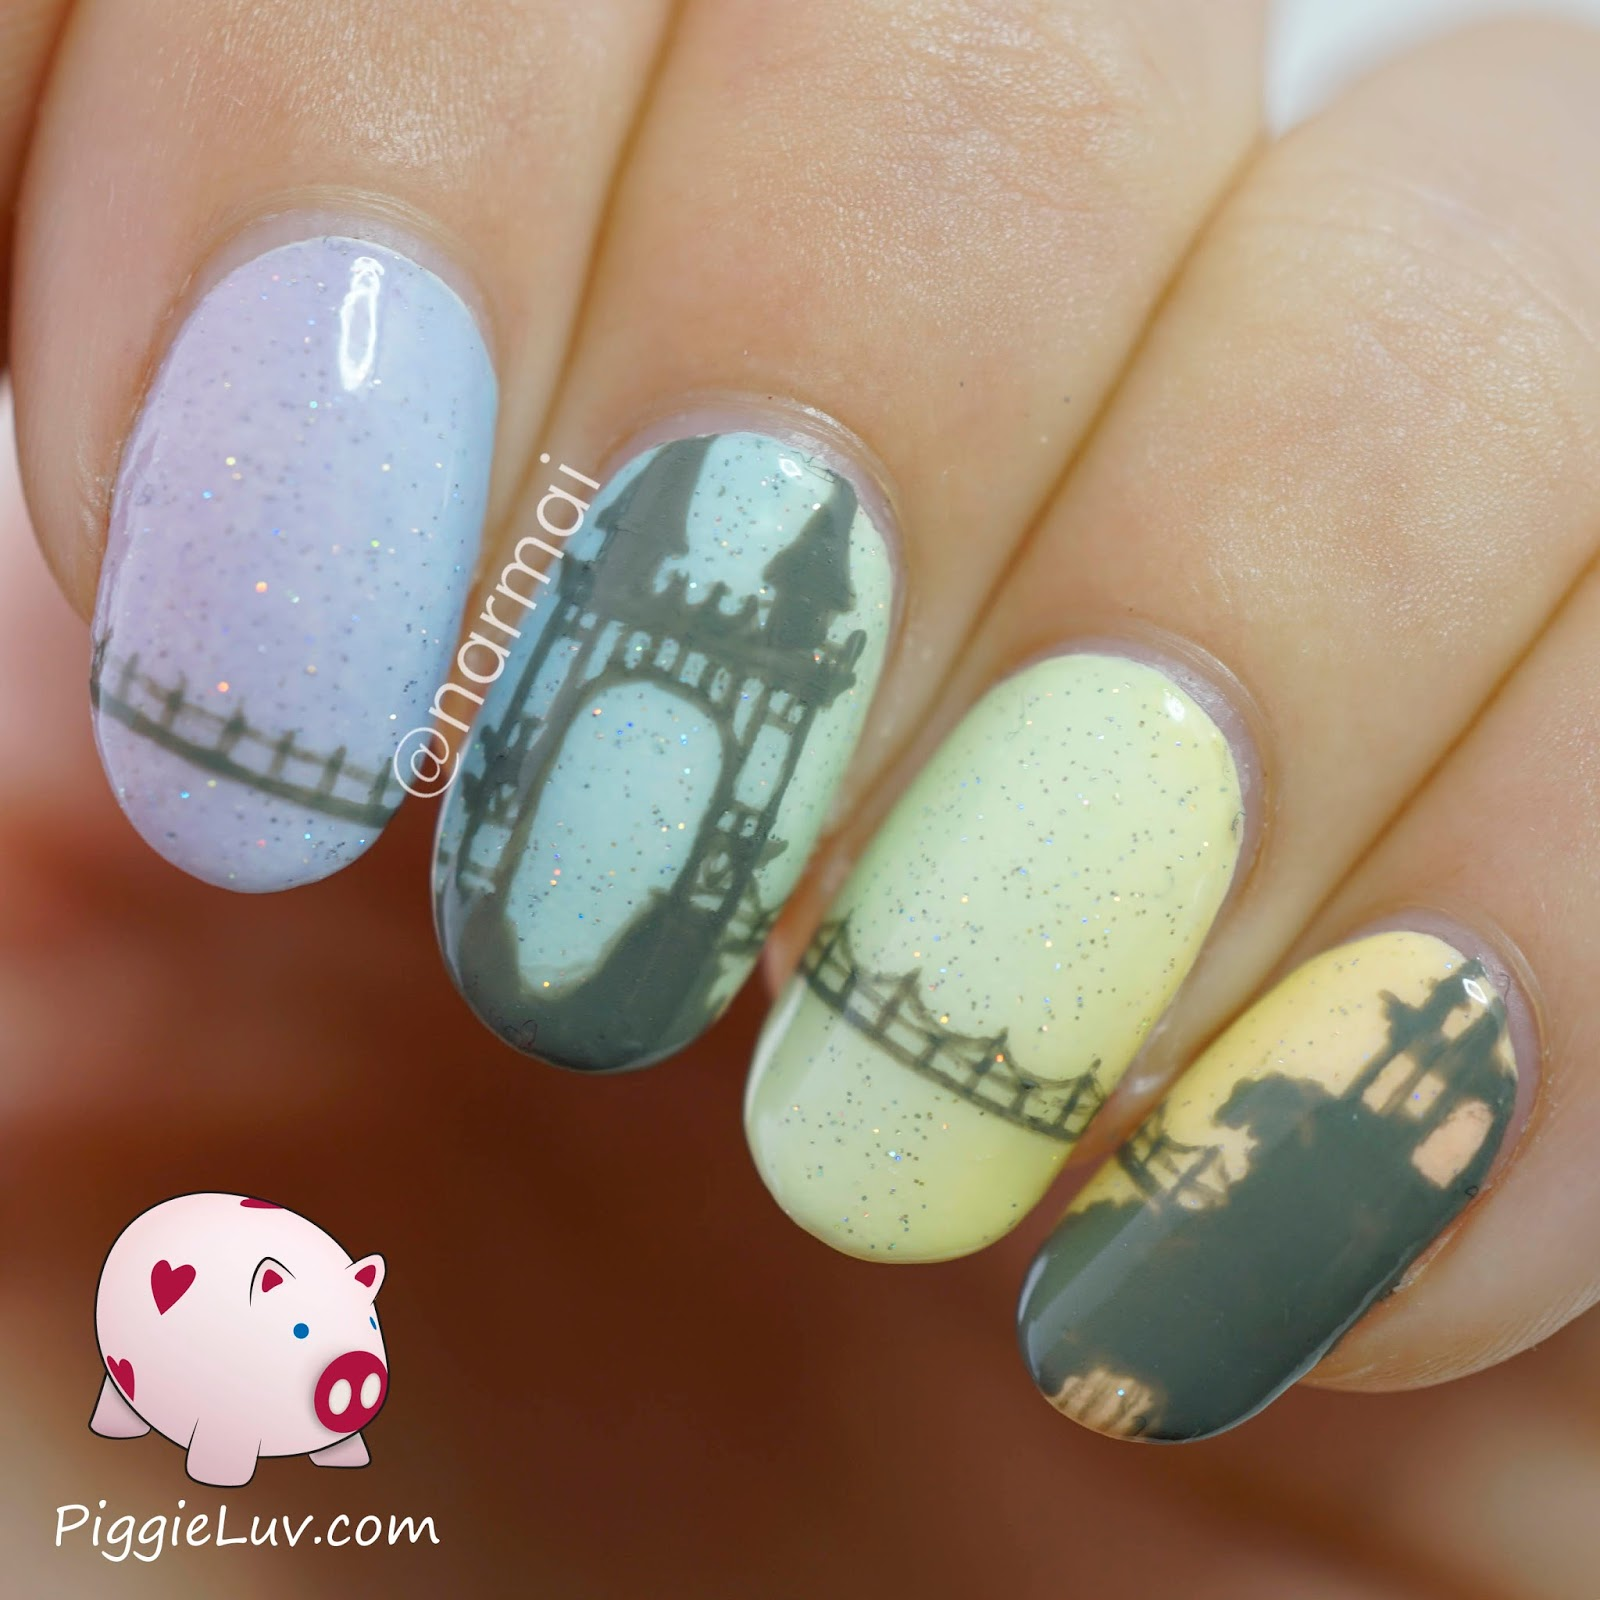 PiggieLuv: Freehand castle on pastel gradient nail art + video tutorial